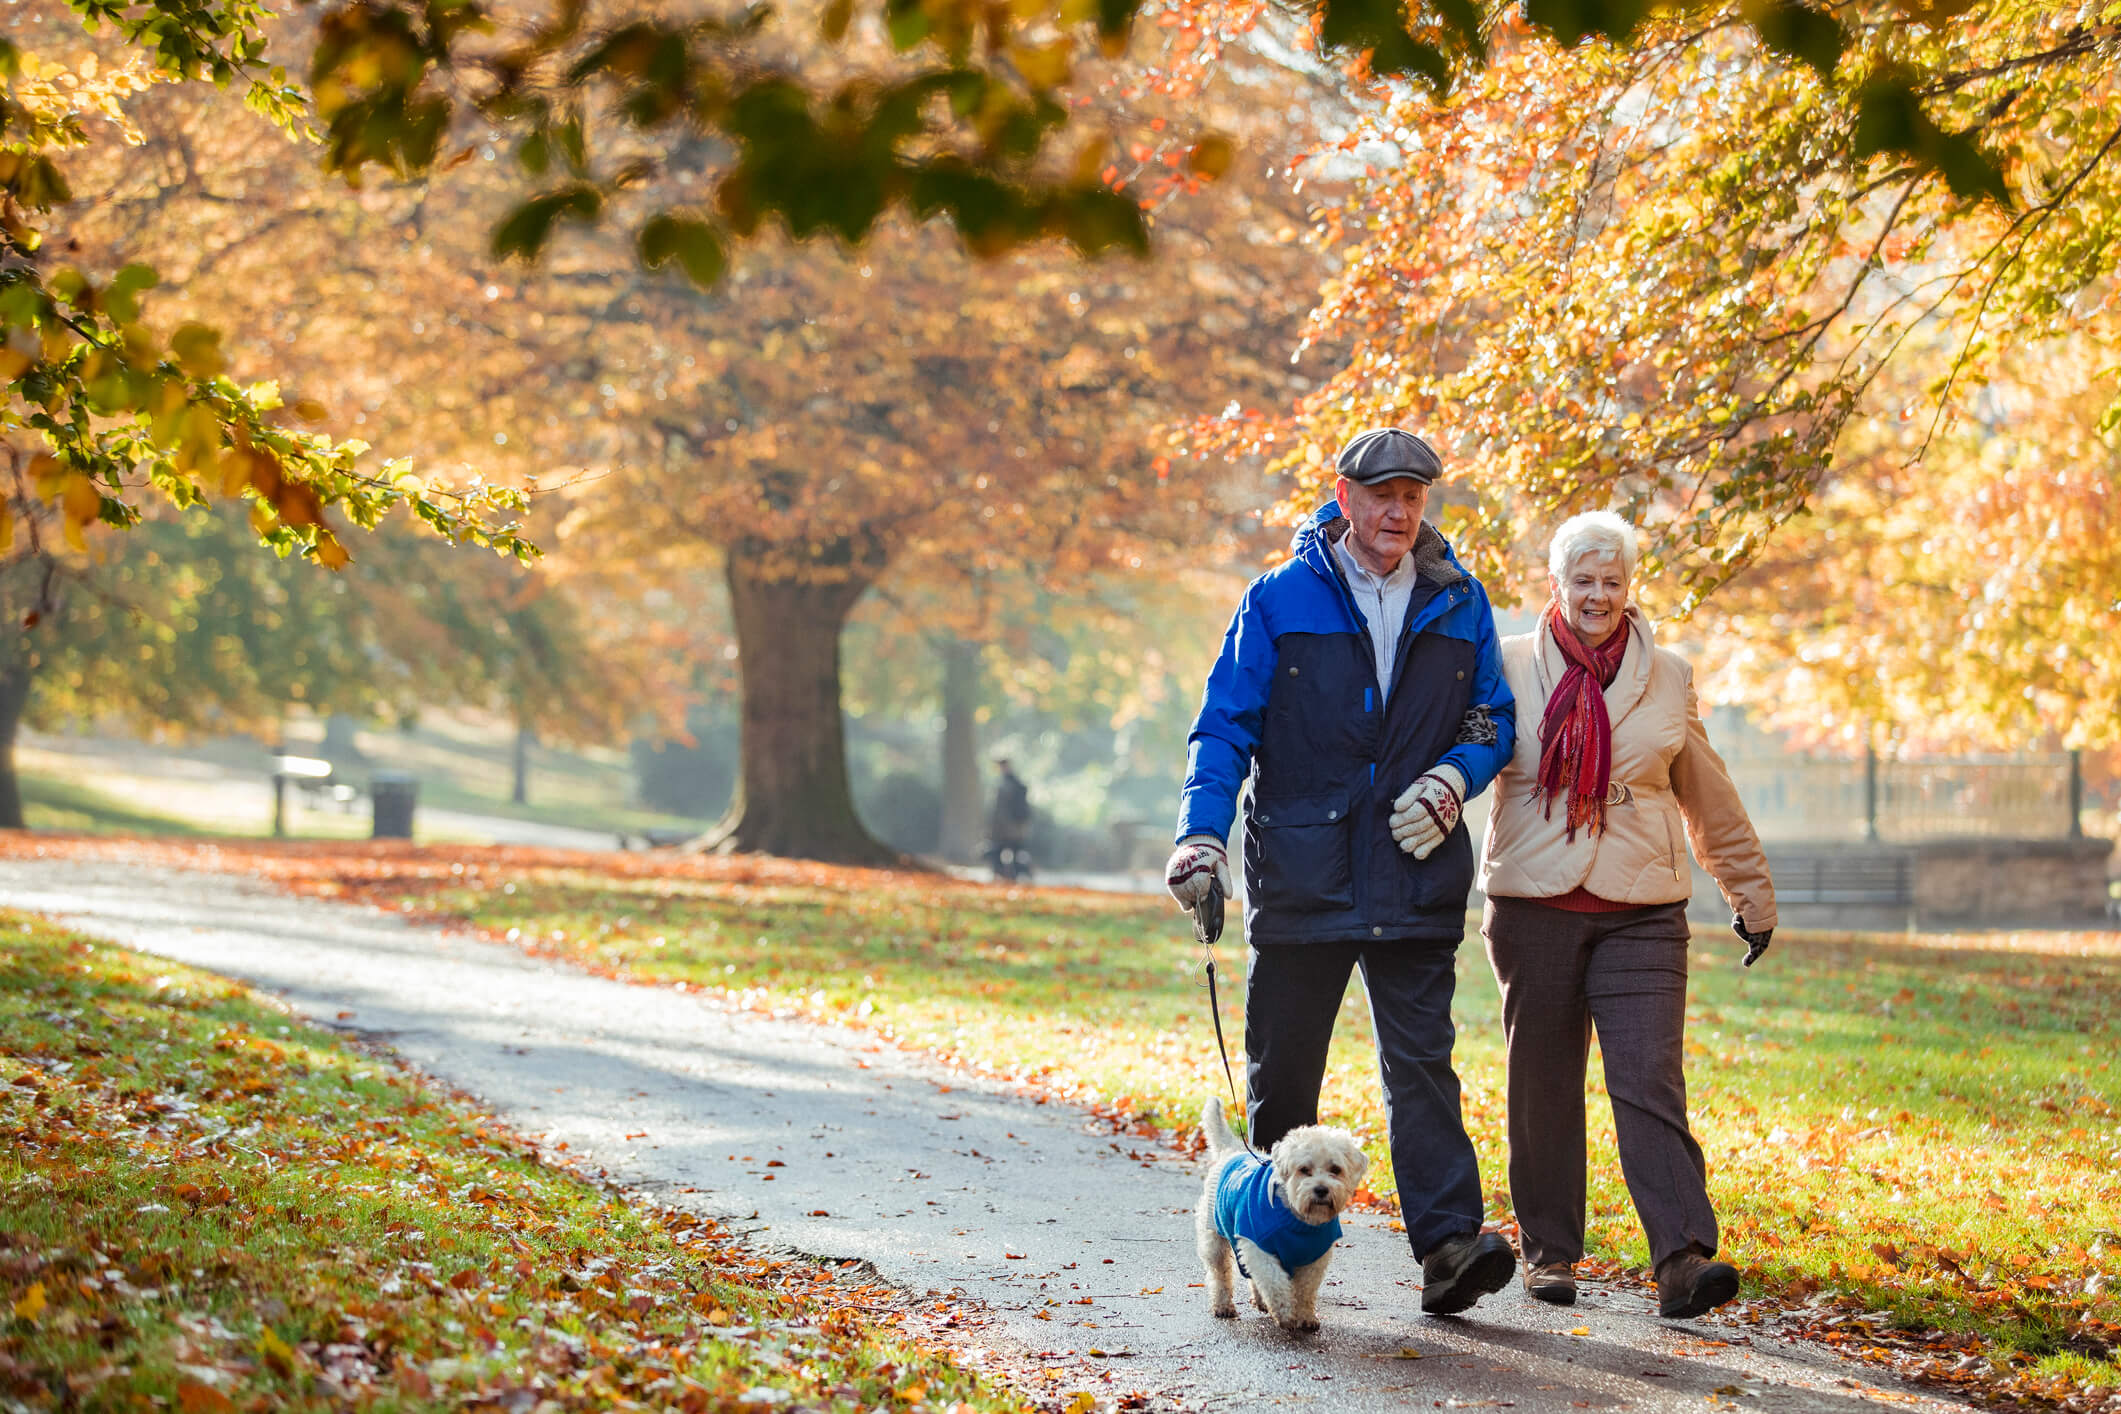 Image of next post - 5 FUN FALL IDEAS FOR ACTIVE OLDER ADULTS